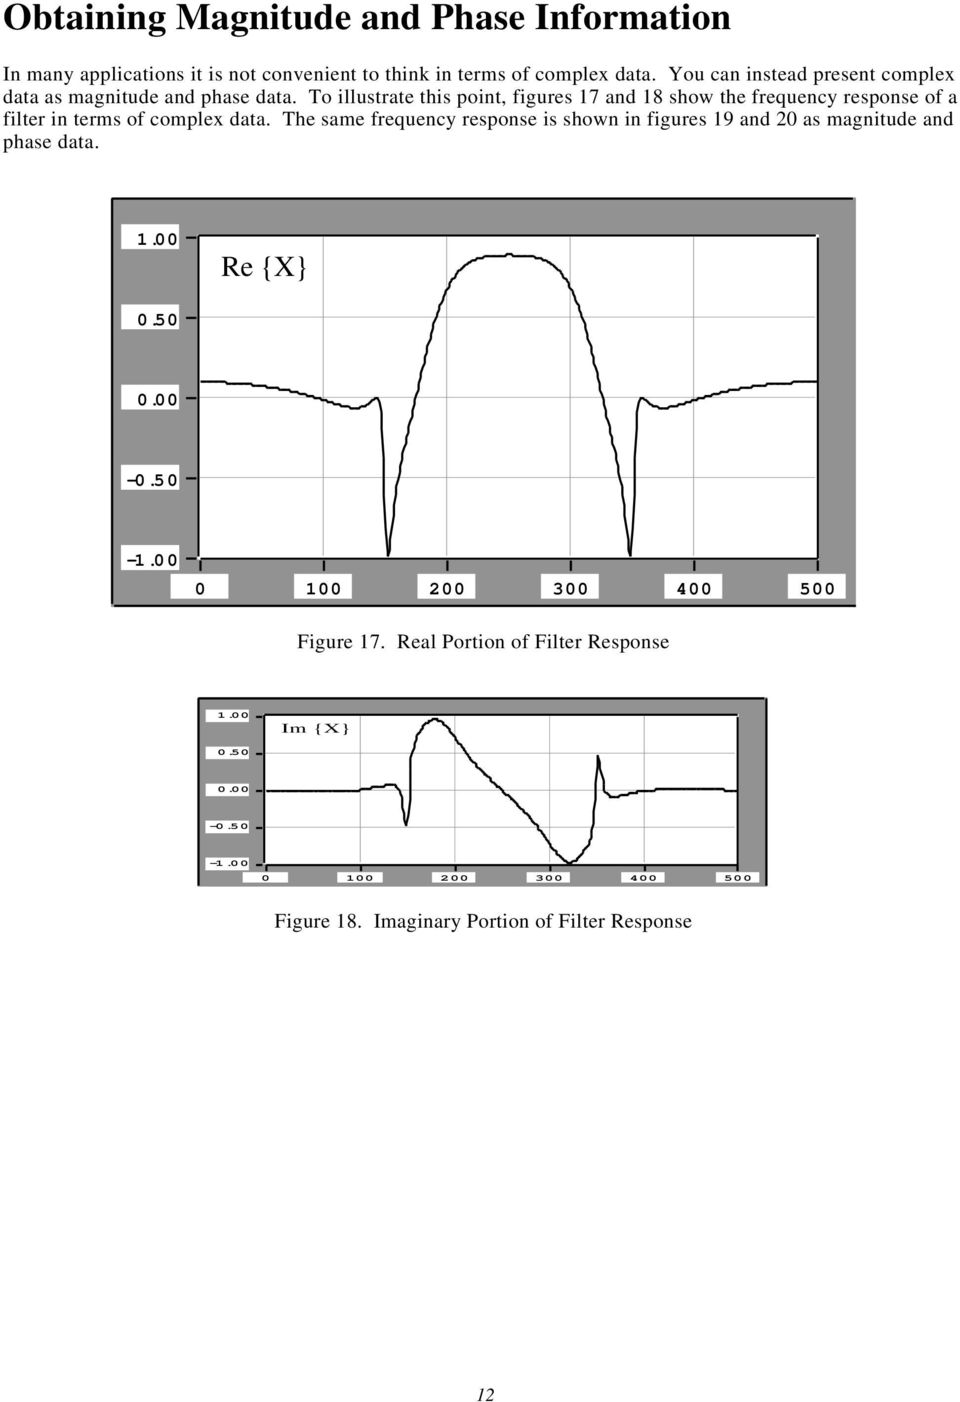 To illustrate this point, figures 17 and 18 show the frequency response of a filter in terms of complex data.